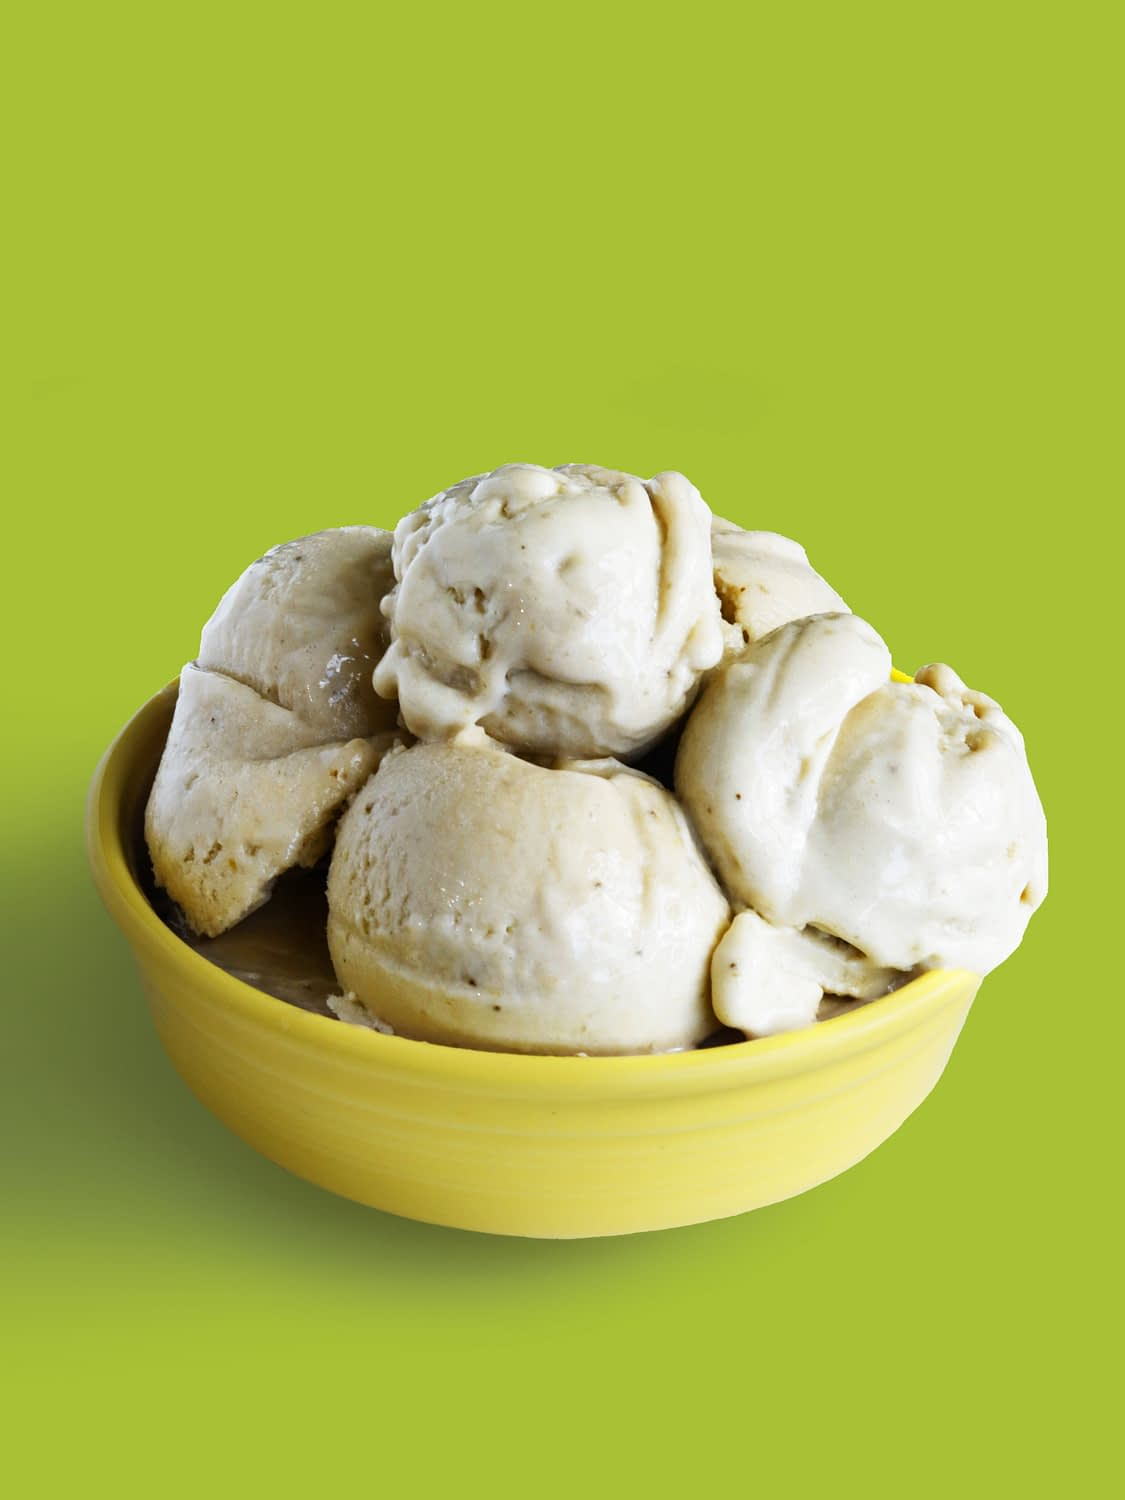 creamy banana nice cream in a yellow bowl for a Healthy summer treat